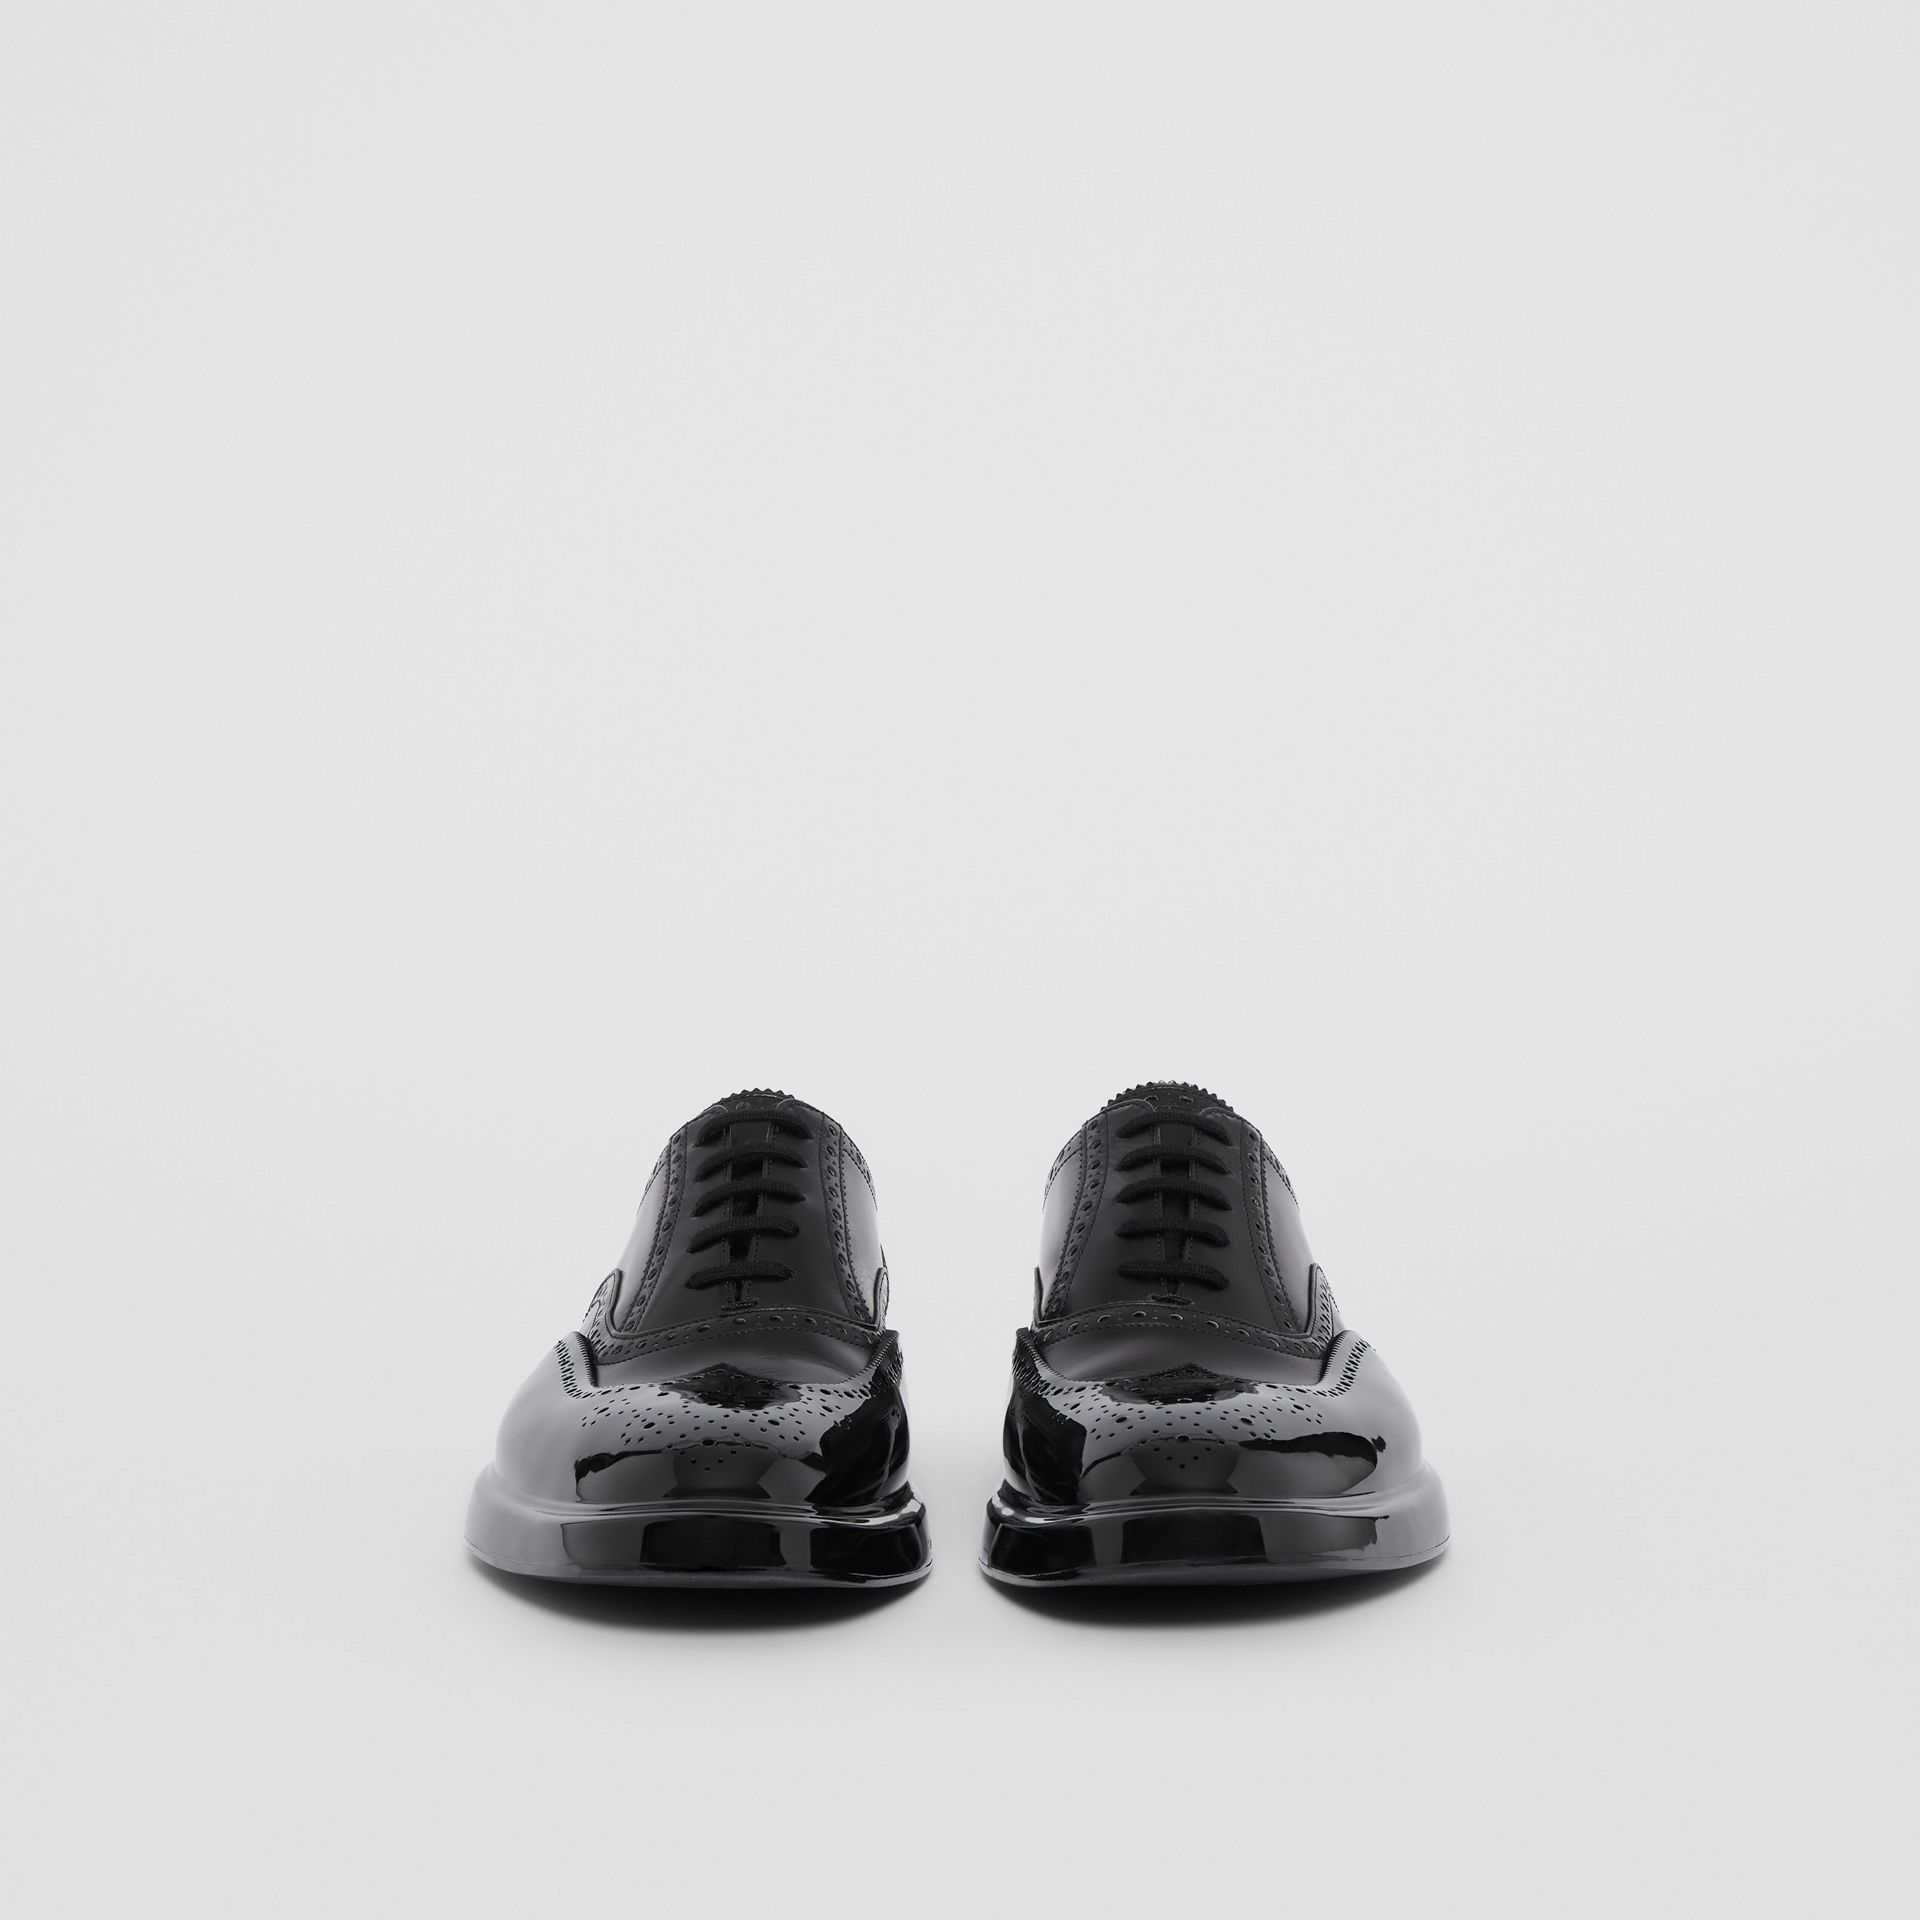 Toe Cap Detail Leather Oxford Brogues in Black - Men | Burberry United Kingdom - gallery image 3